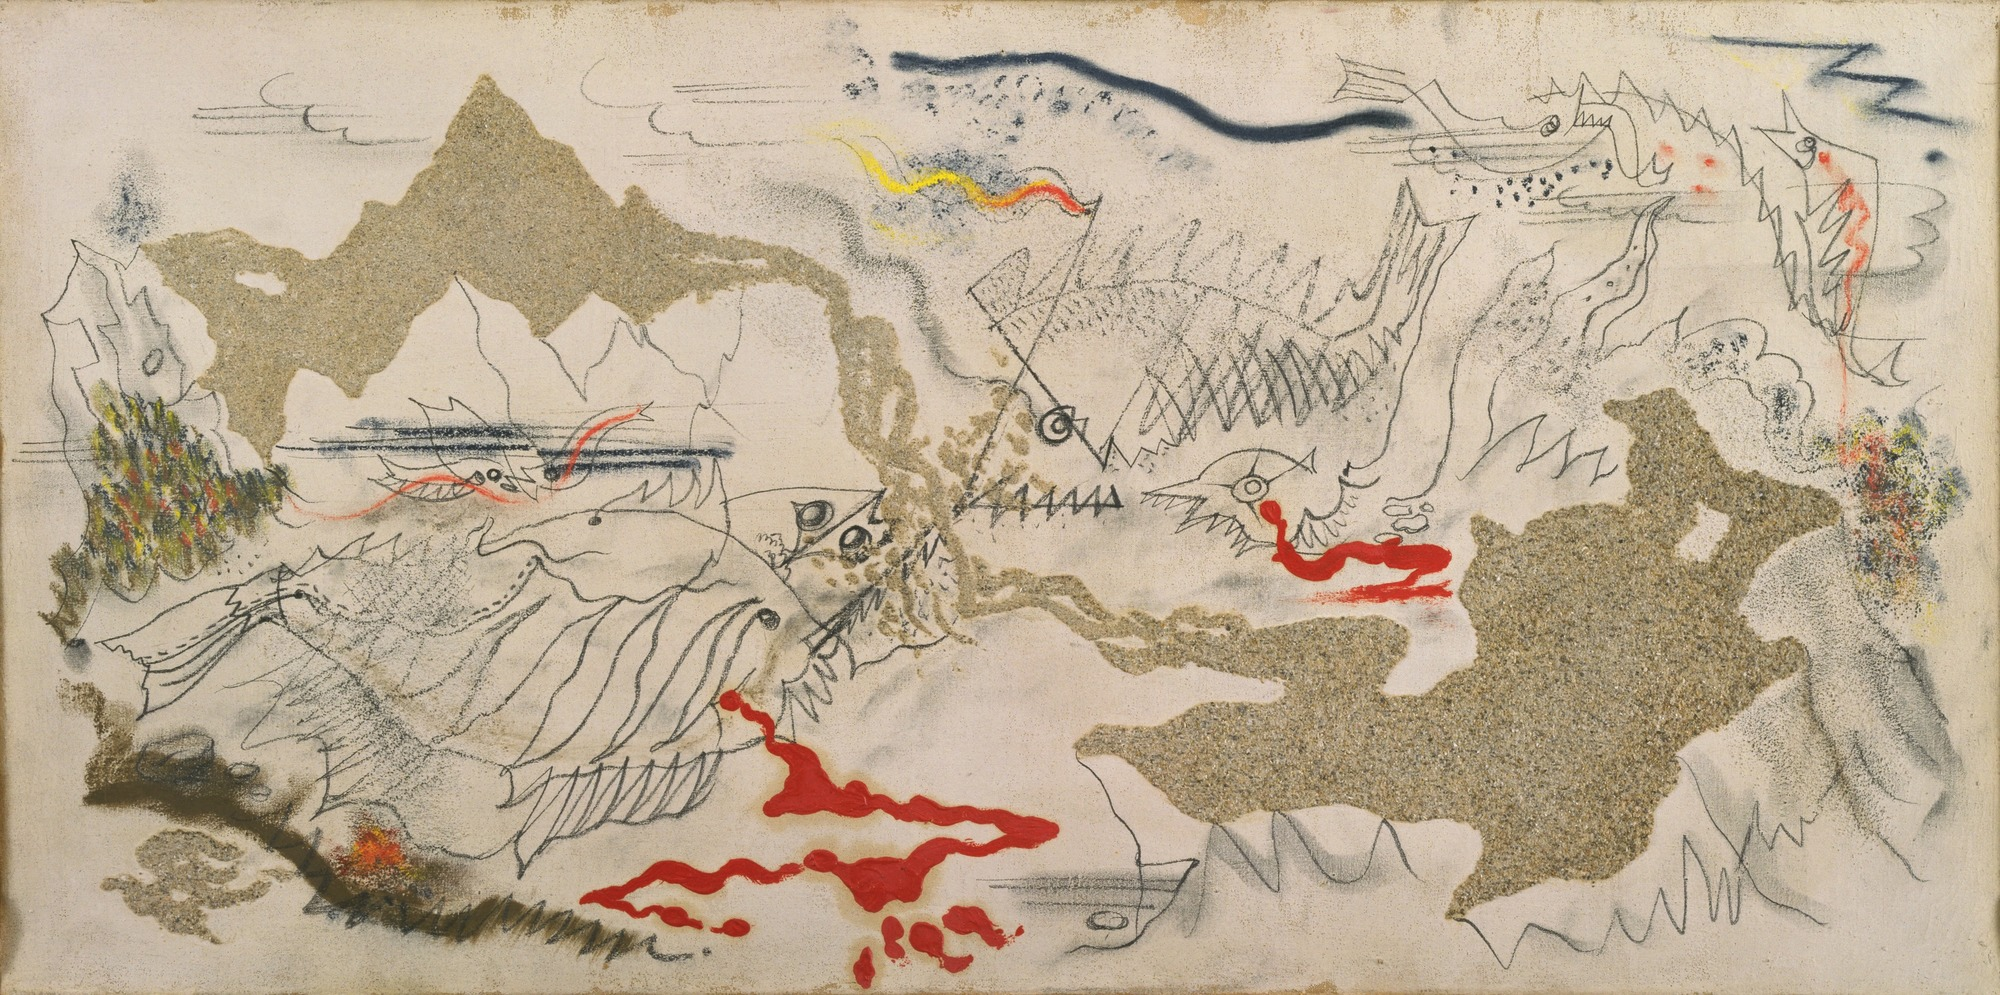 André Masson, Battle of Fishes, 1926, sand, gesso, oil, pencil and charcoal on canvas, 14 ¼ x 28 ¾ inches (MoMA)